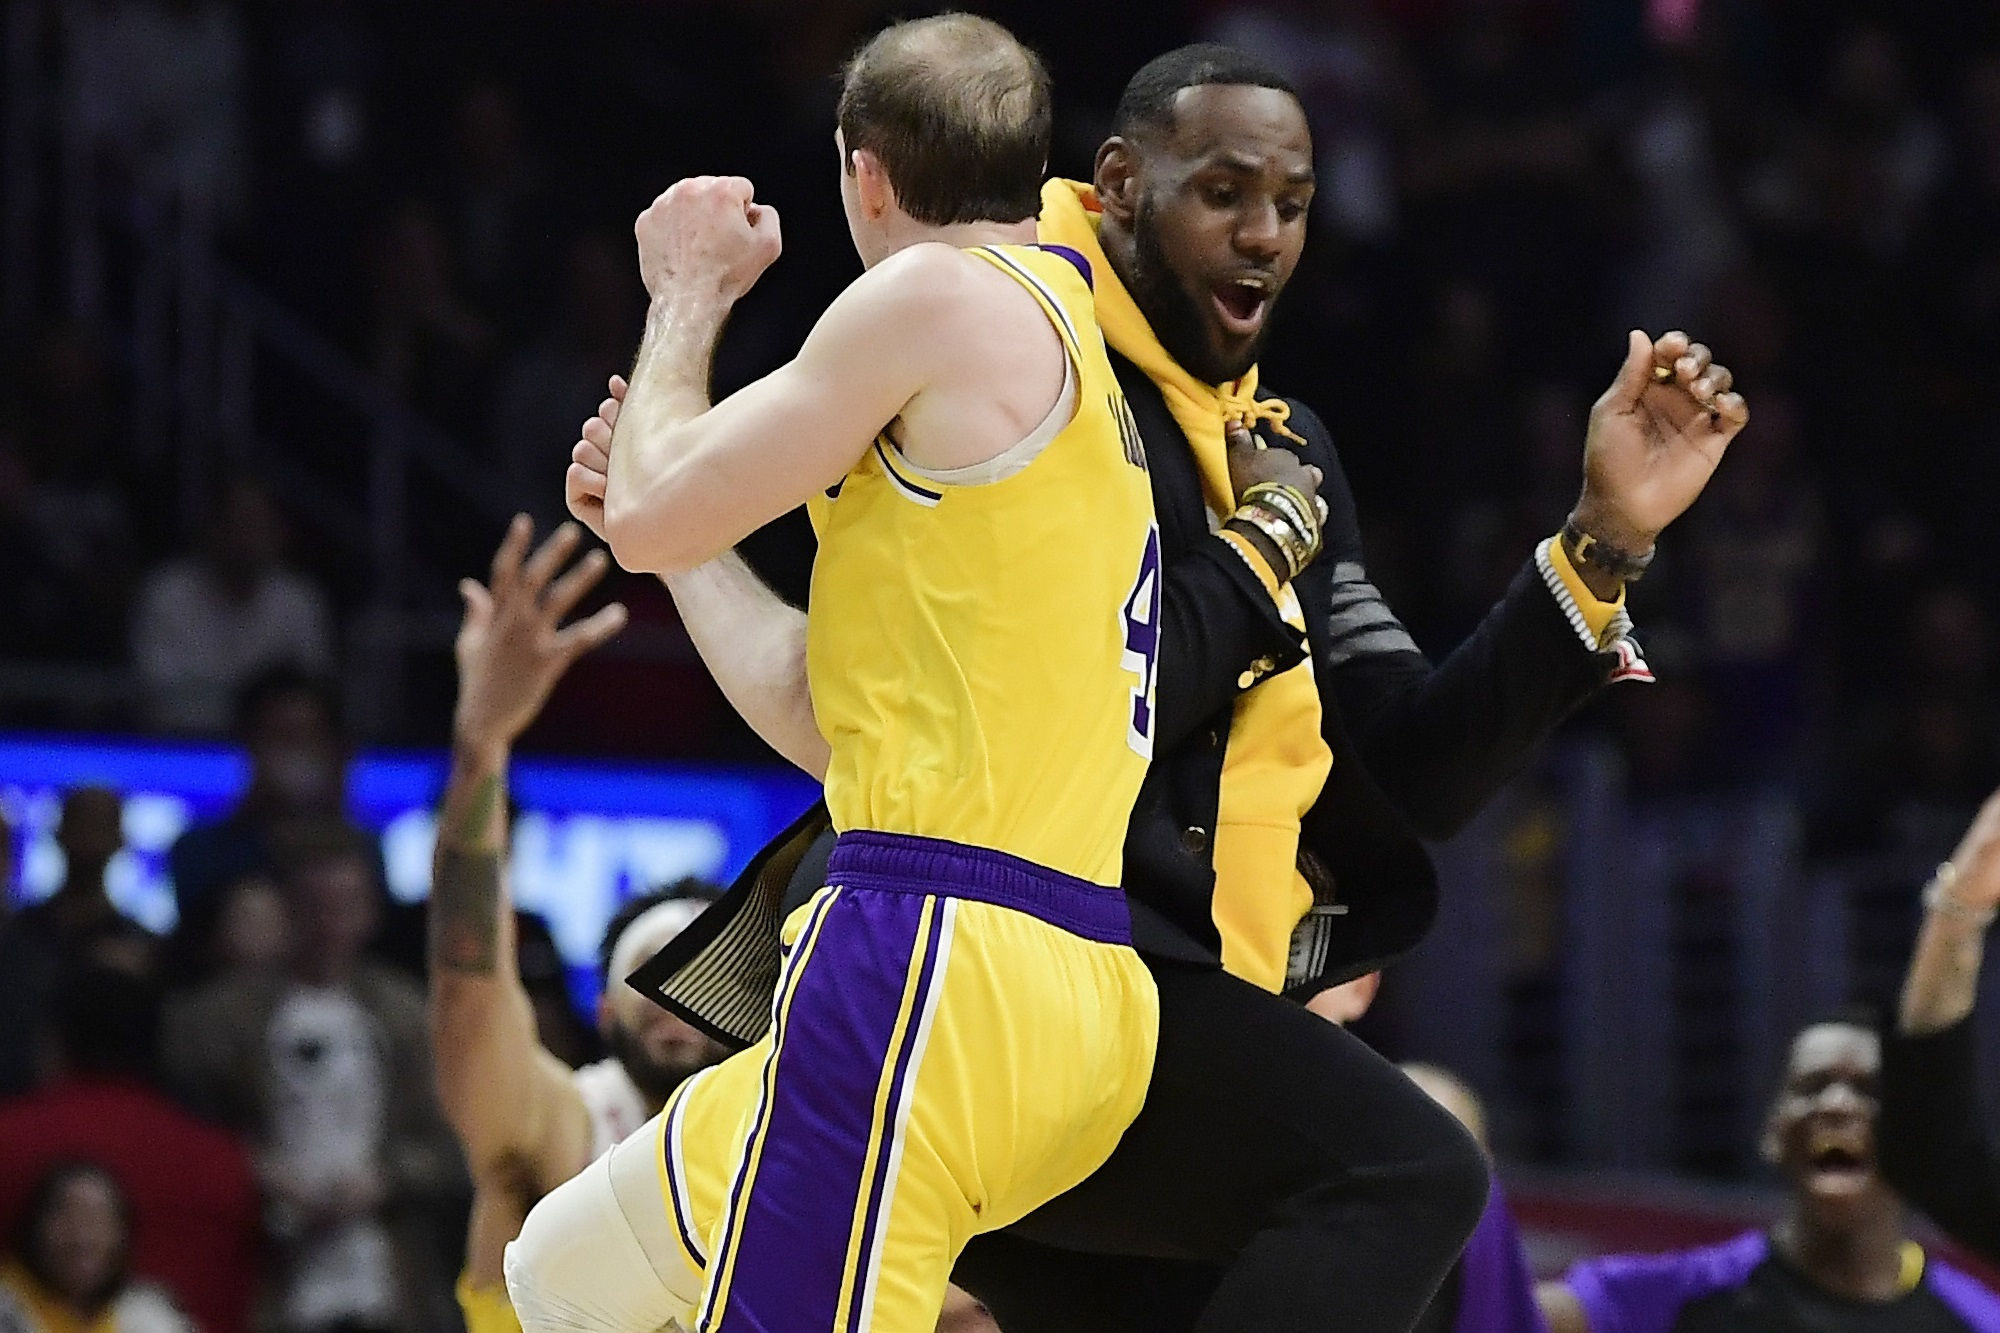 Alex Caruso and LeBron James, Los Angeles Lakers vs L.A. Clippers at Staples Center